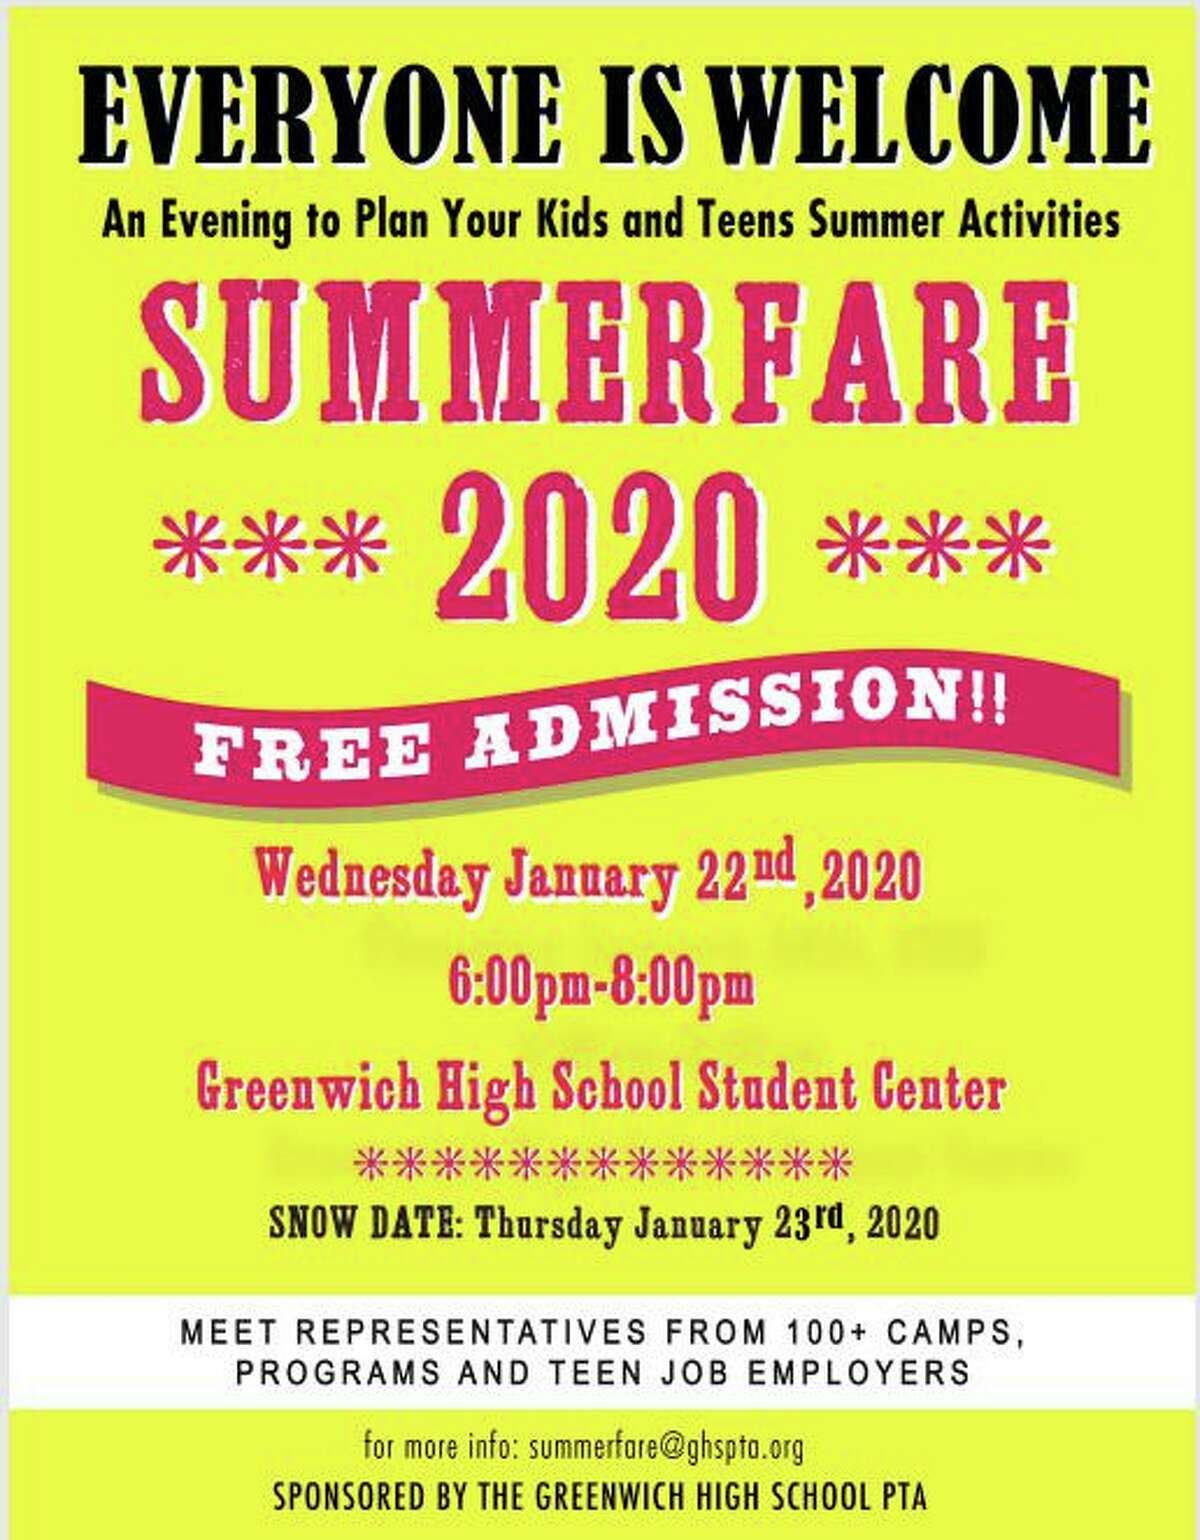 Summerfare is the only event in Greenwich or the surrounding towns that focuses on summer activities, camps and employment for kids and teens, said parent and publicist for GHS Kendra Farn. More than 100 representatives from summer camps, programs and teen employment opportunities.